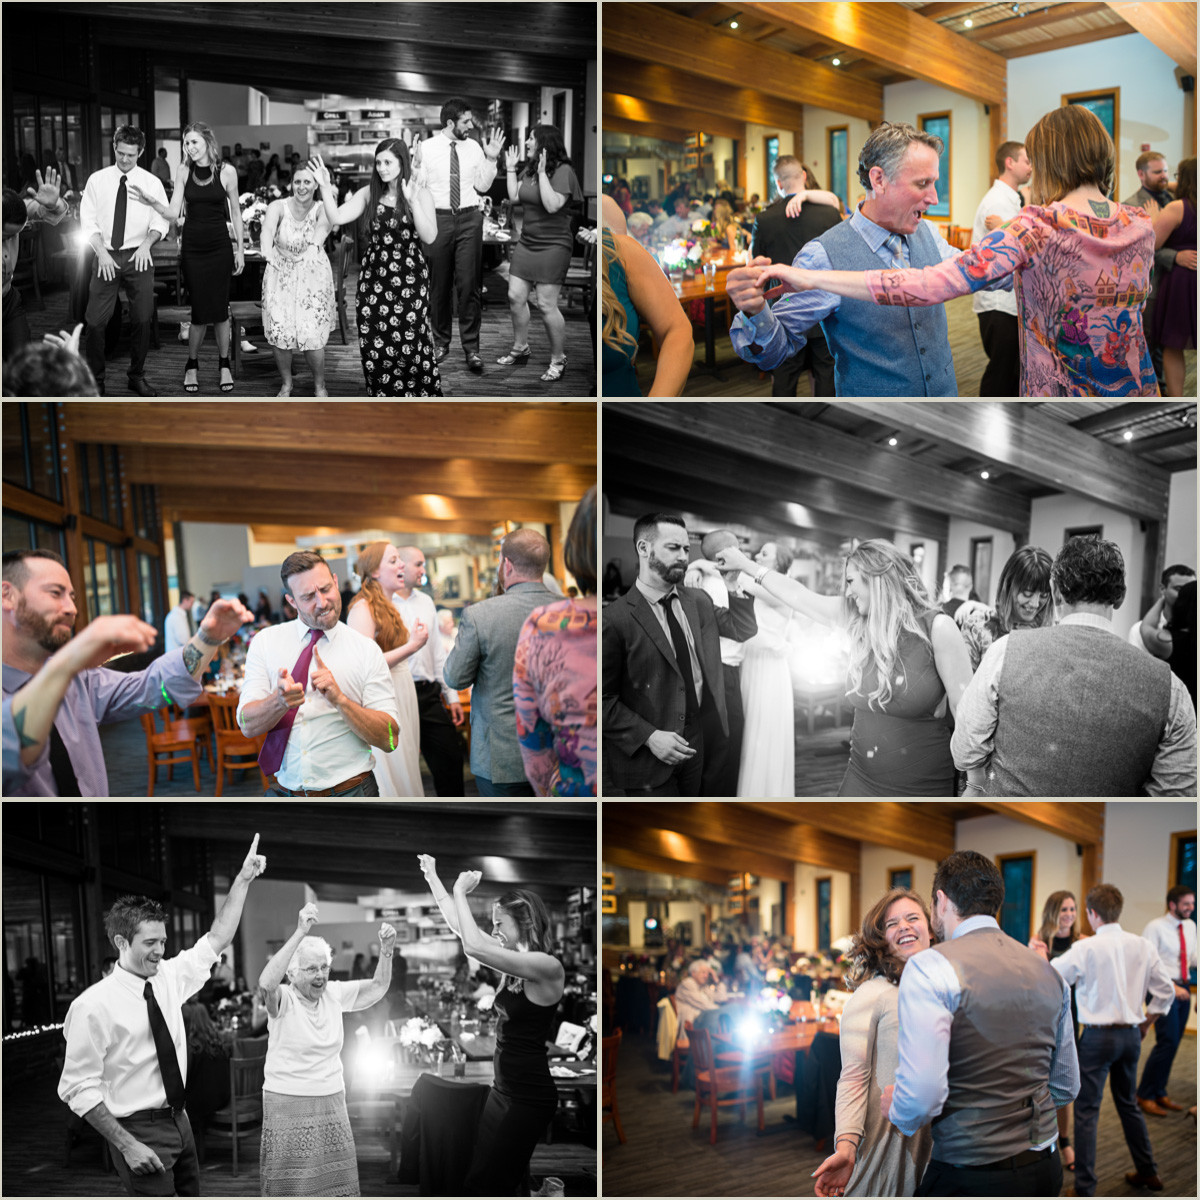 Guests Breaking down the Dance Floor at Wedding at Silver Fur Lodge